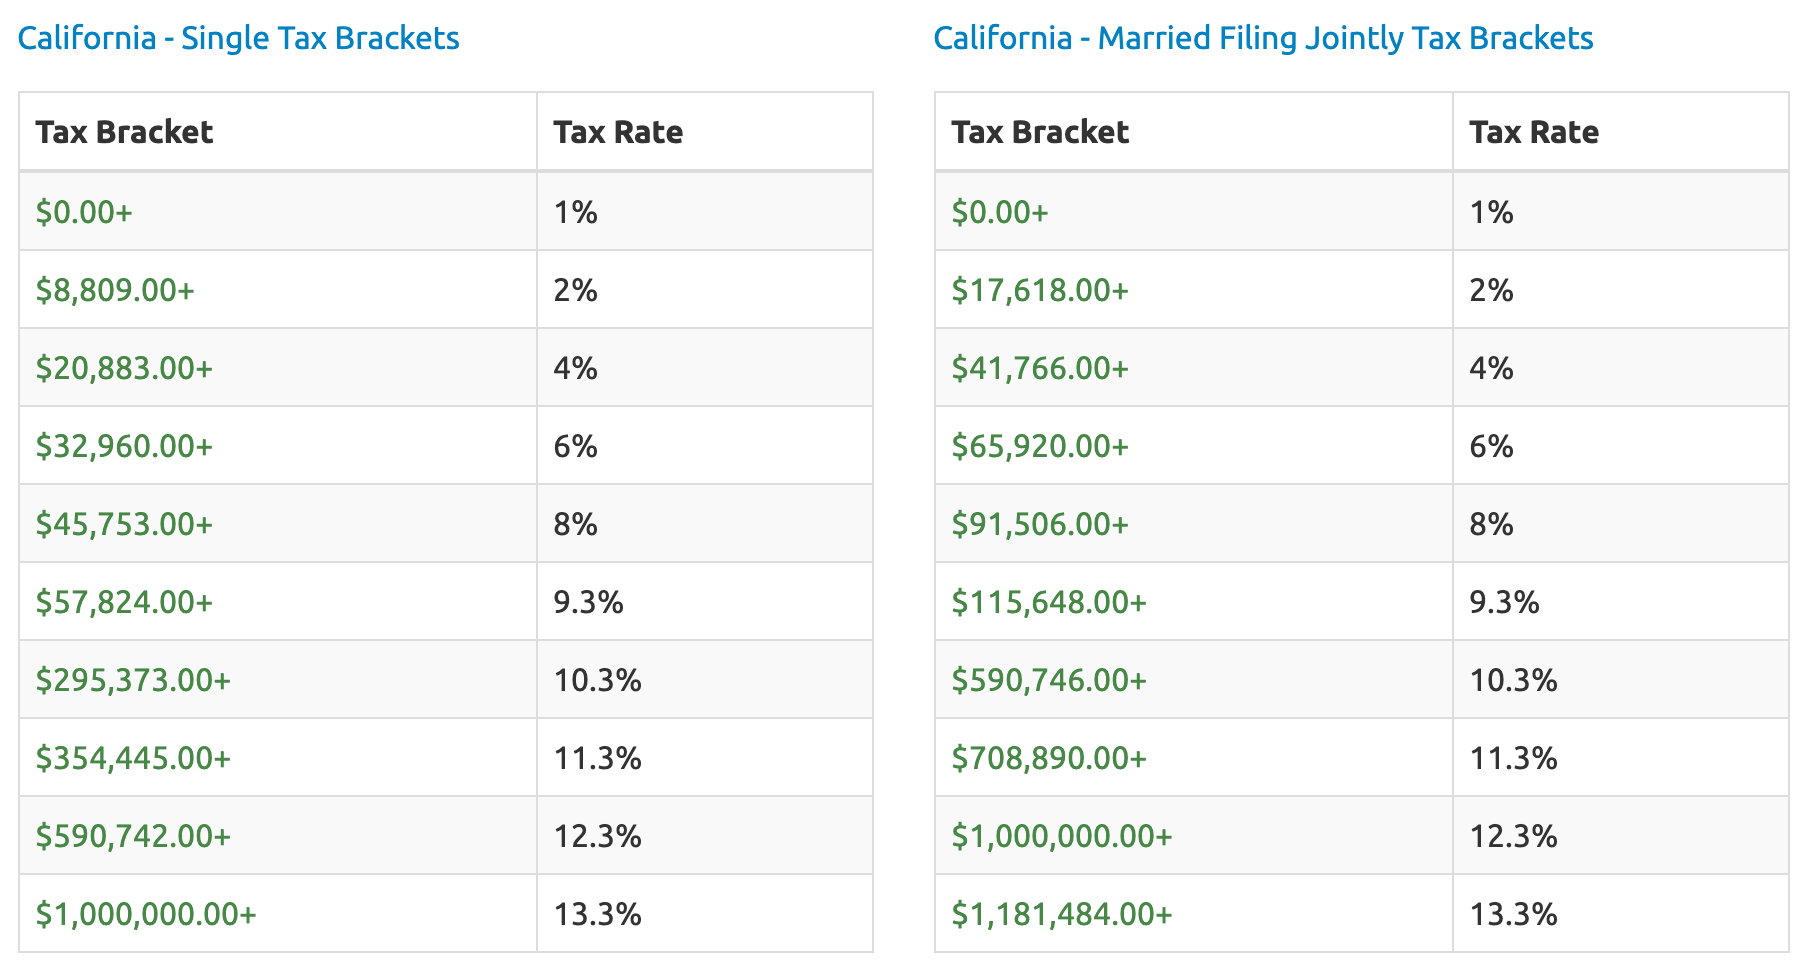 Before migrating to California, know the state income tax rates